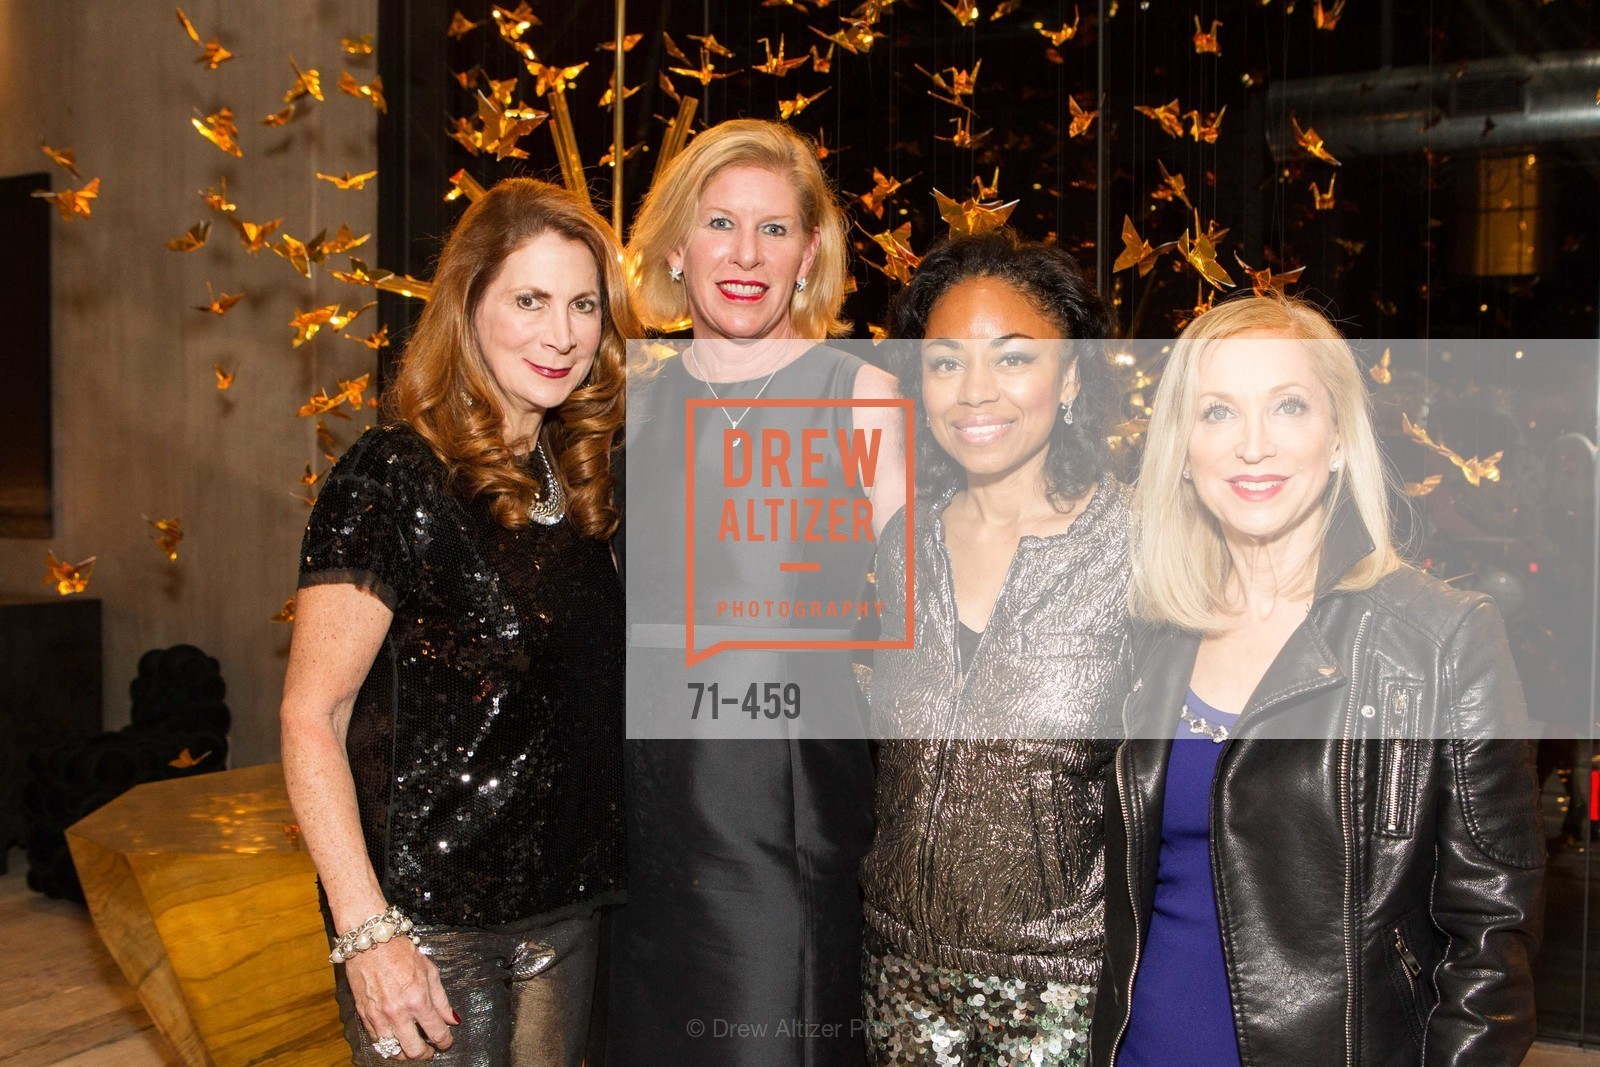 Patricia Ferrin Loucks, Jennifer Brandenburg, Tanya Powell, Shelley Gordon, 2014 SAN FRANCISCO BALLET OPENING NIGHT GALA Patron and Sponsor Reception, US. US, January 14th, 2014,Drew Altizer, Drew Altizer Photography, full-service event agency, private events, San Francisco photographer, photographer California